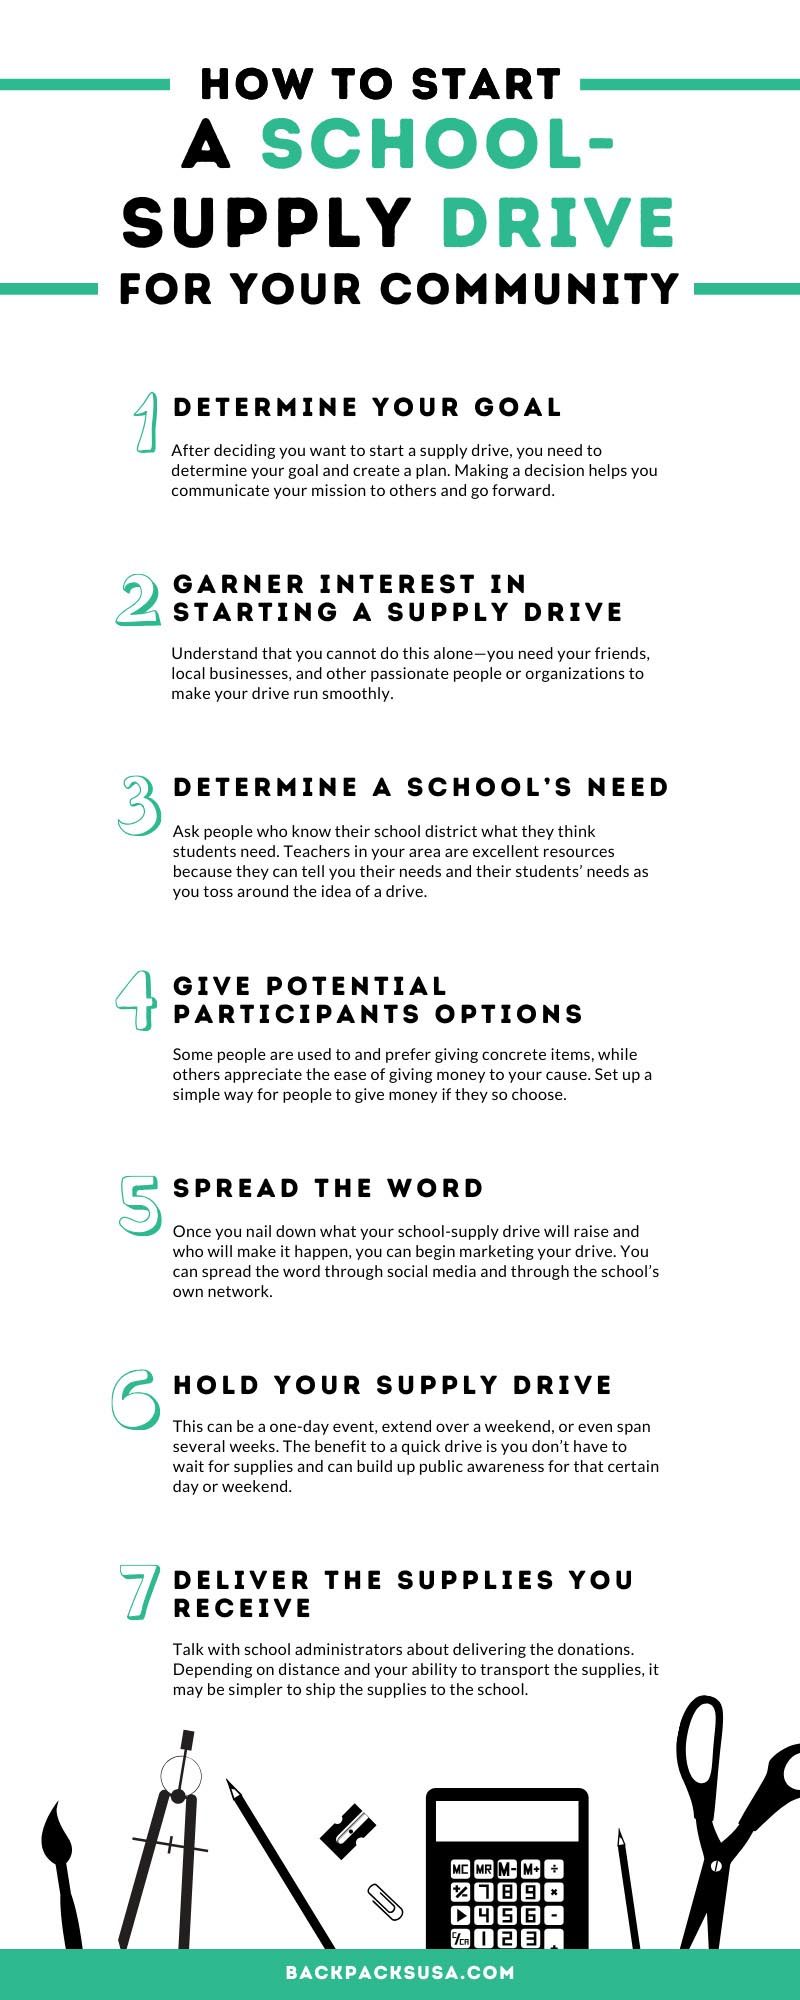 How to Start a School-Supply Drive for Your Community